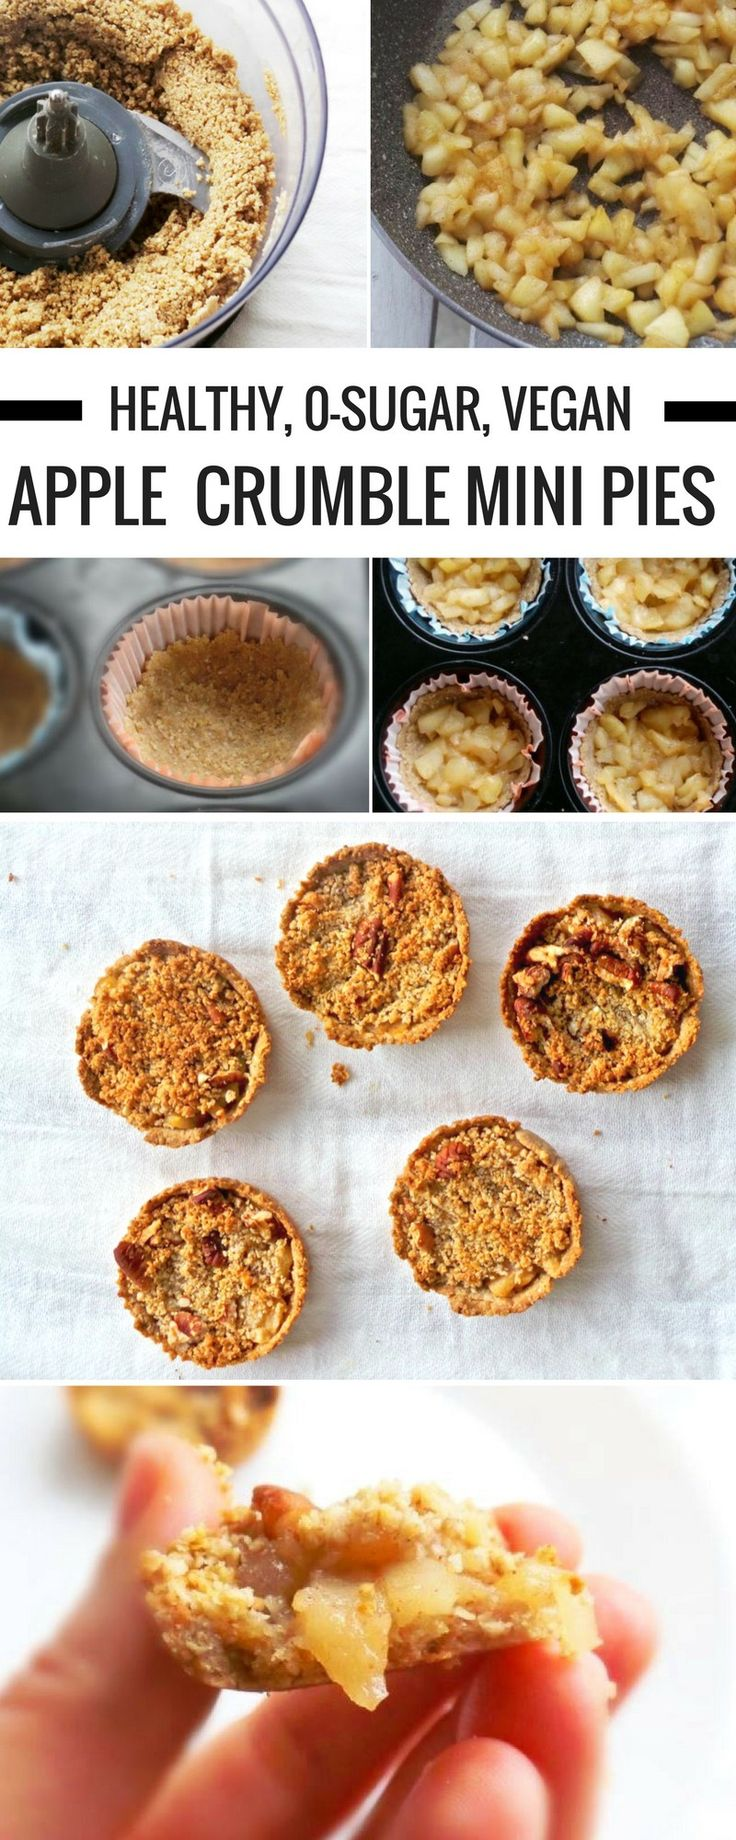 """Healthy apple crumble with oats! You'd never guess all these mini apple pies are sweetened with just 1 tbsp honey and made without any flour, but oats & nuts! This is a very delicious plant-based, healthy """"apple pie"""" recipe, that you can also eat for breakfast. These are vegan, gluten-free (if you use gf oats), high-fiber, refined sugar-free & great if you want to eat healthier!"""